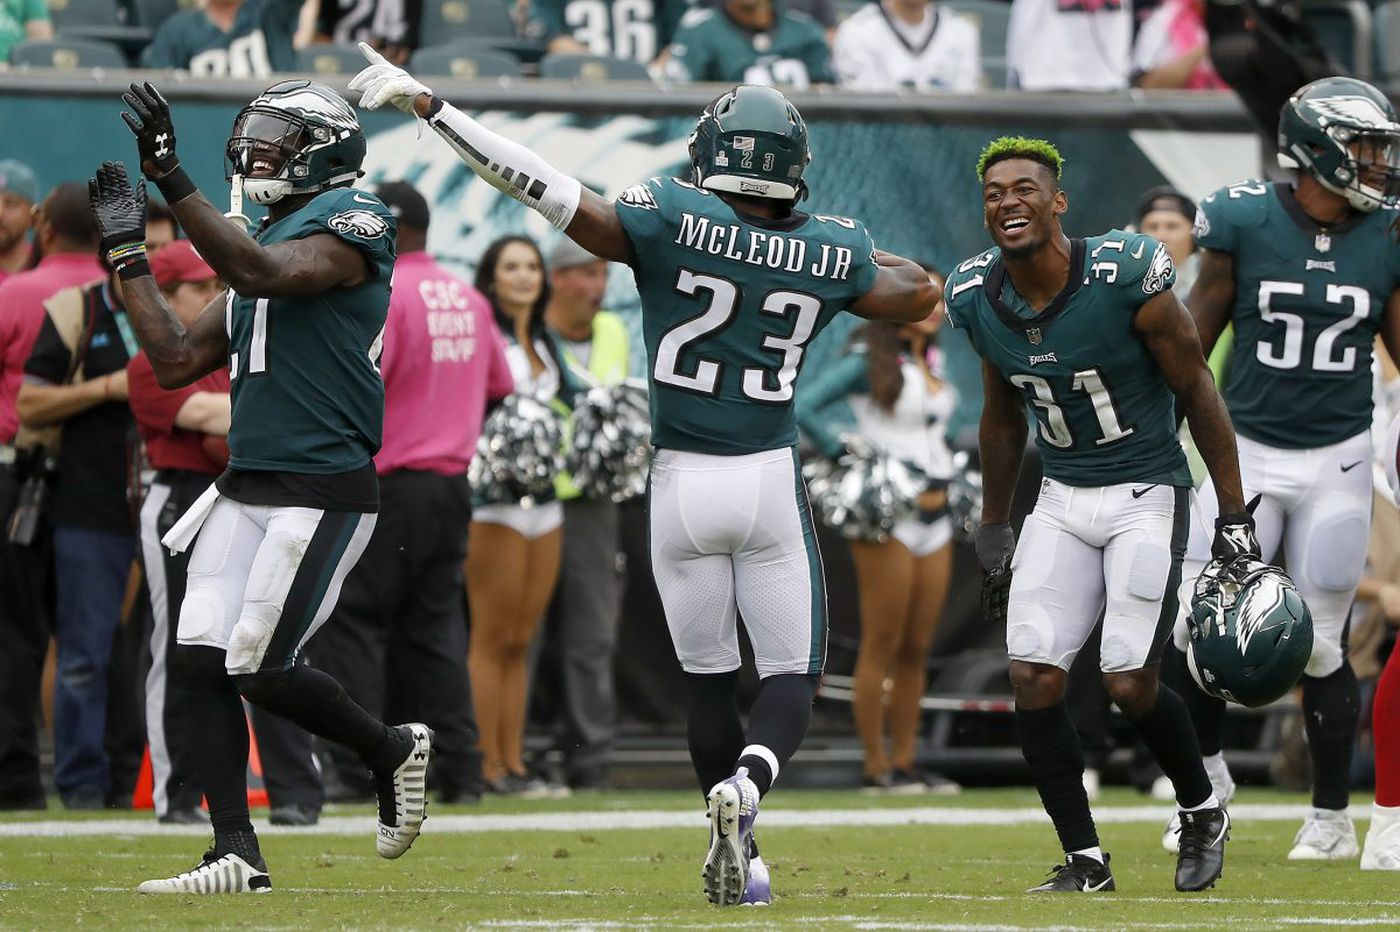 Jalen Mills and Rodney McLeod want to make sure safety isn't a secondary concern for the Eagles